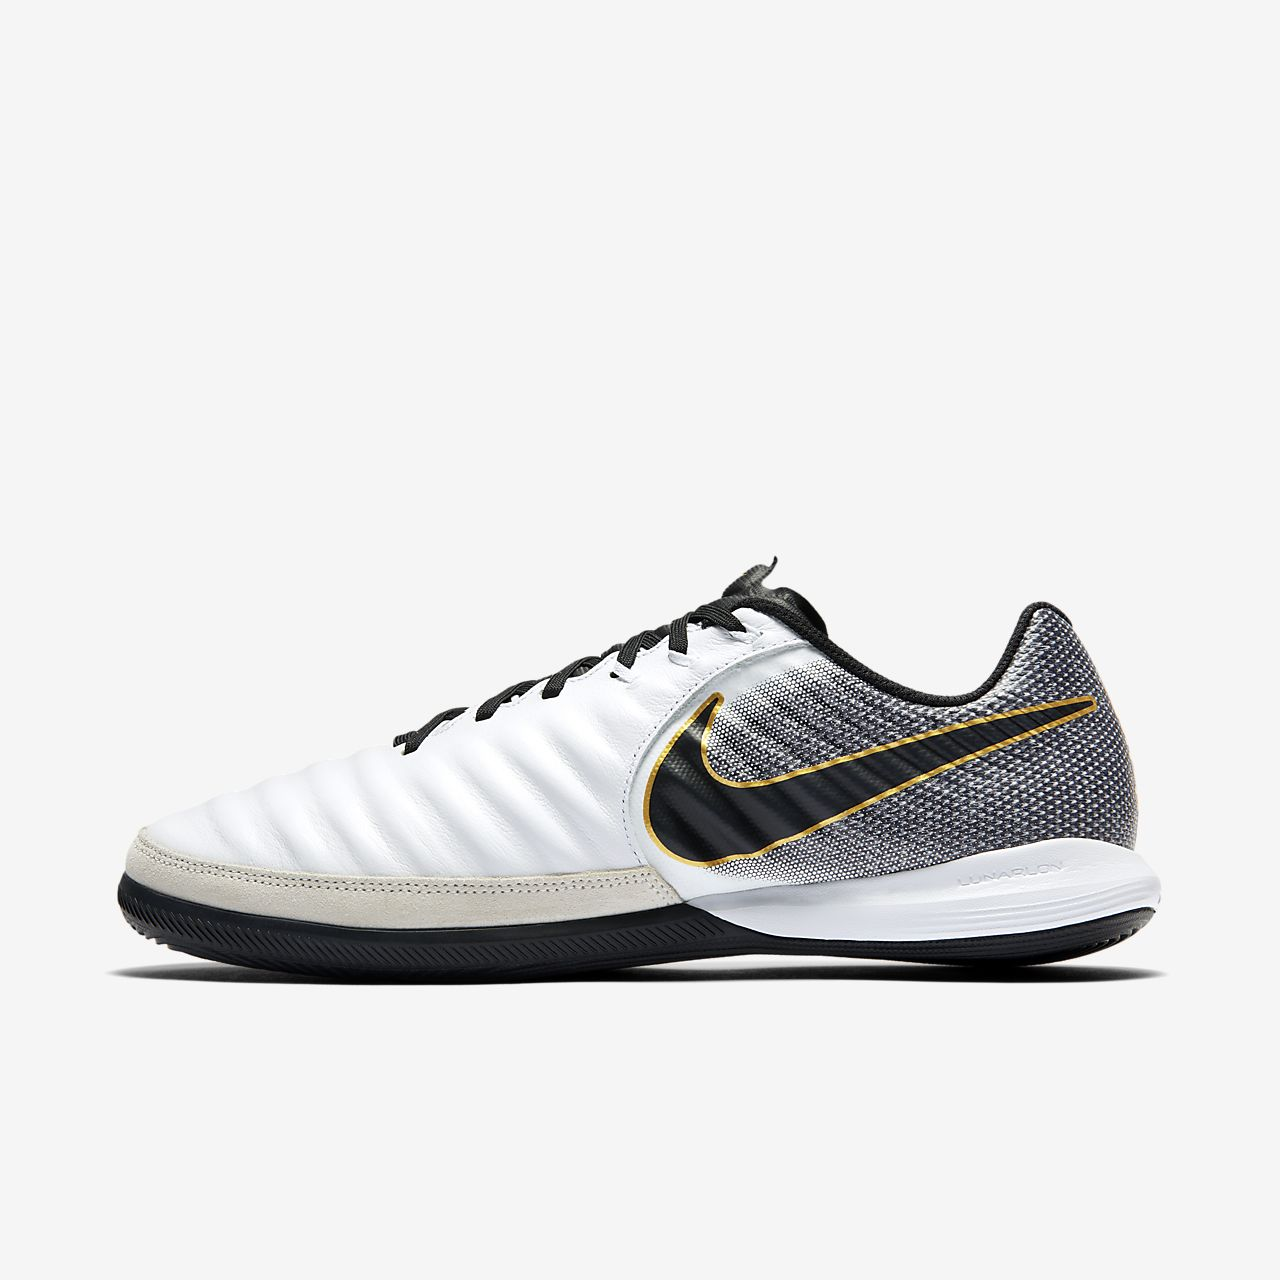 c5e5ccd2d38 Nike TiempoX Lunar Legend VII Pro Indoor Court Football Shoe. Nike ...